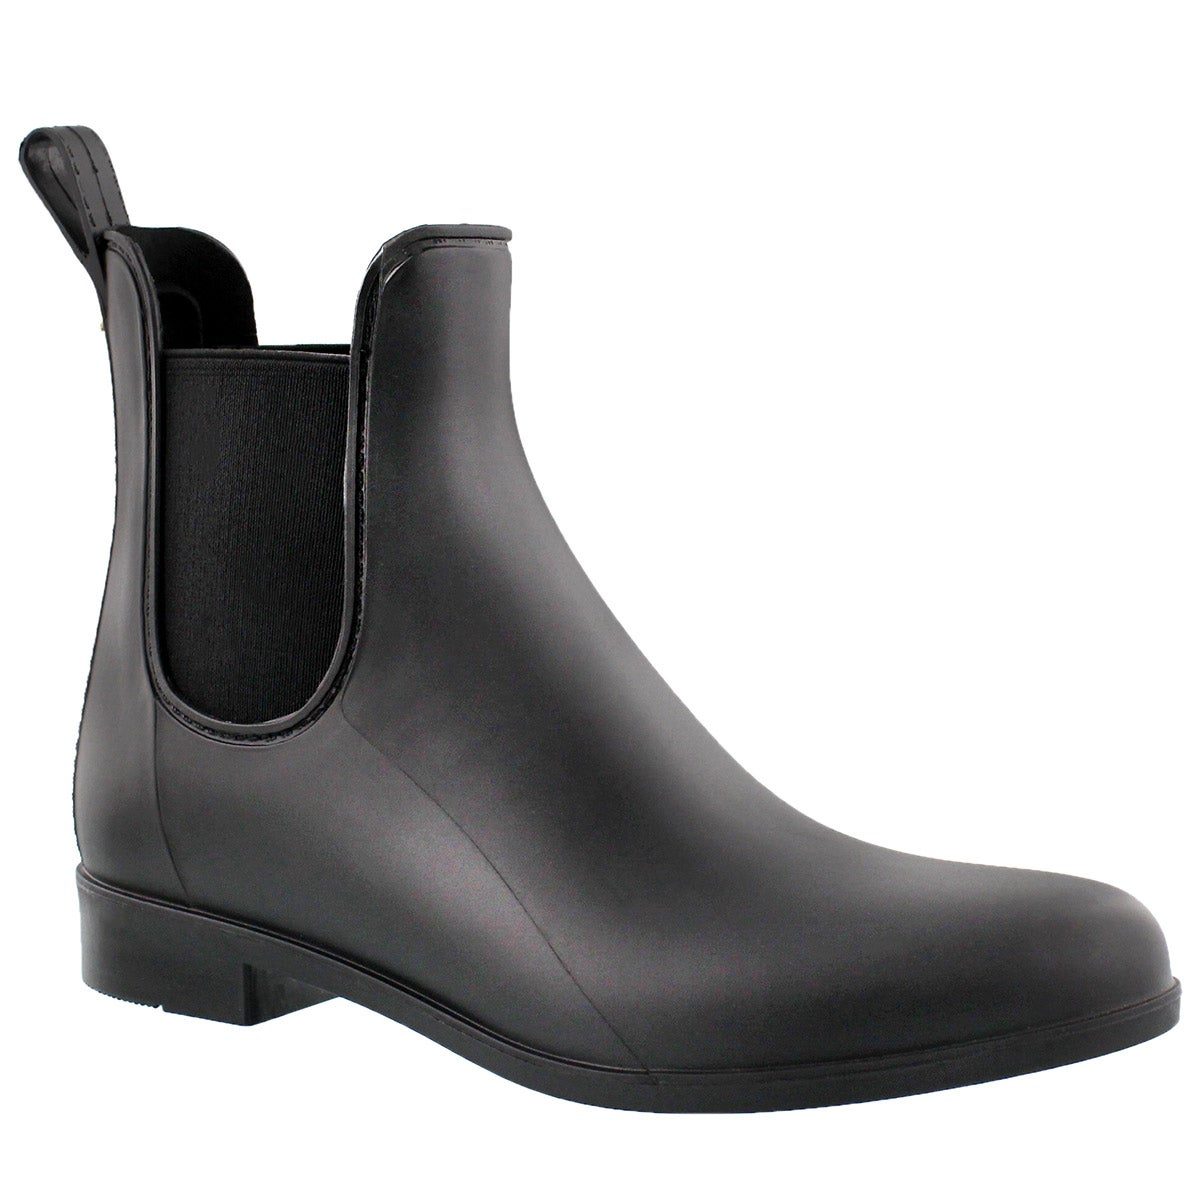 Women's TINSLEY black matte rain boots